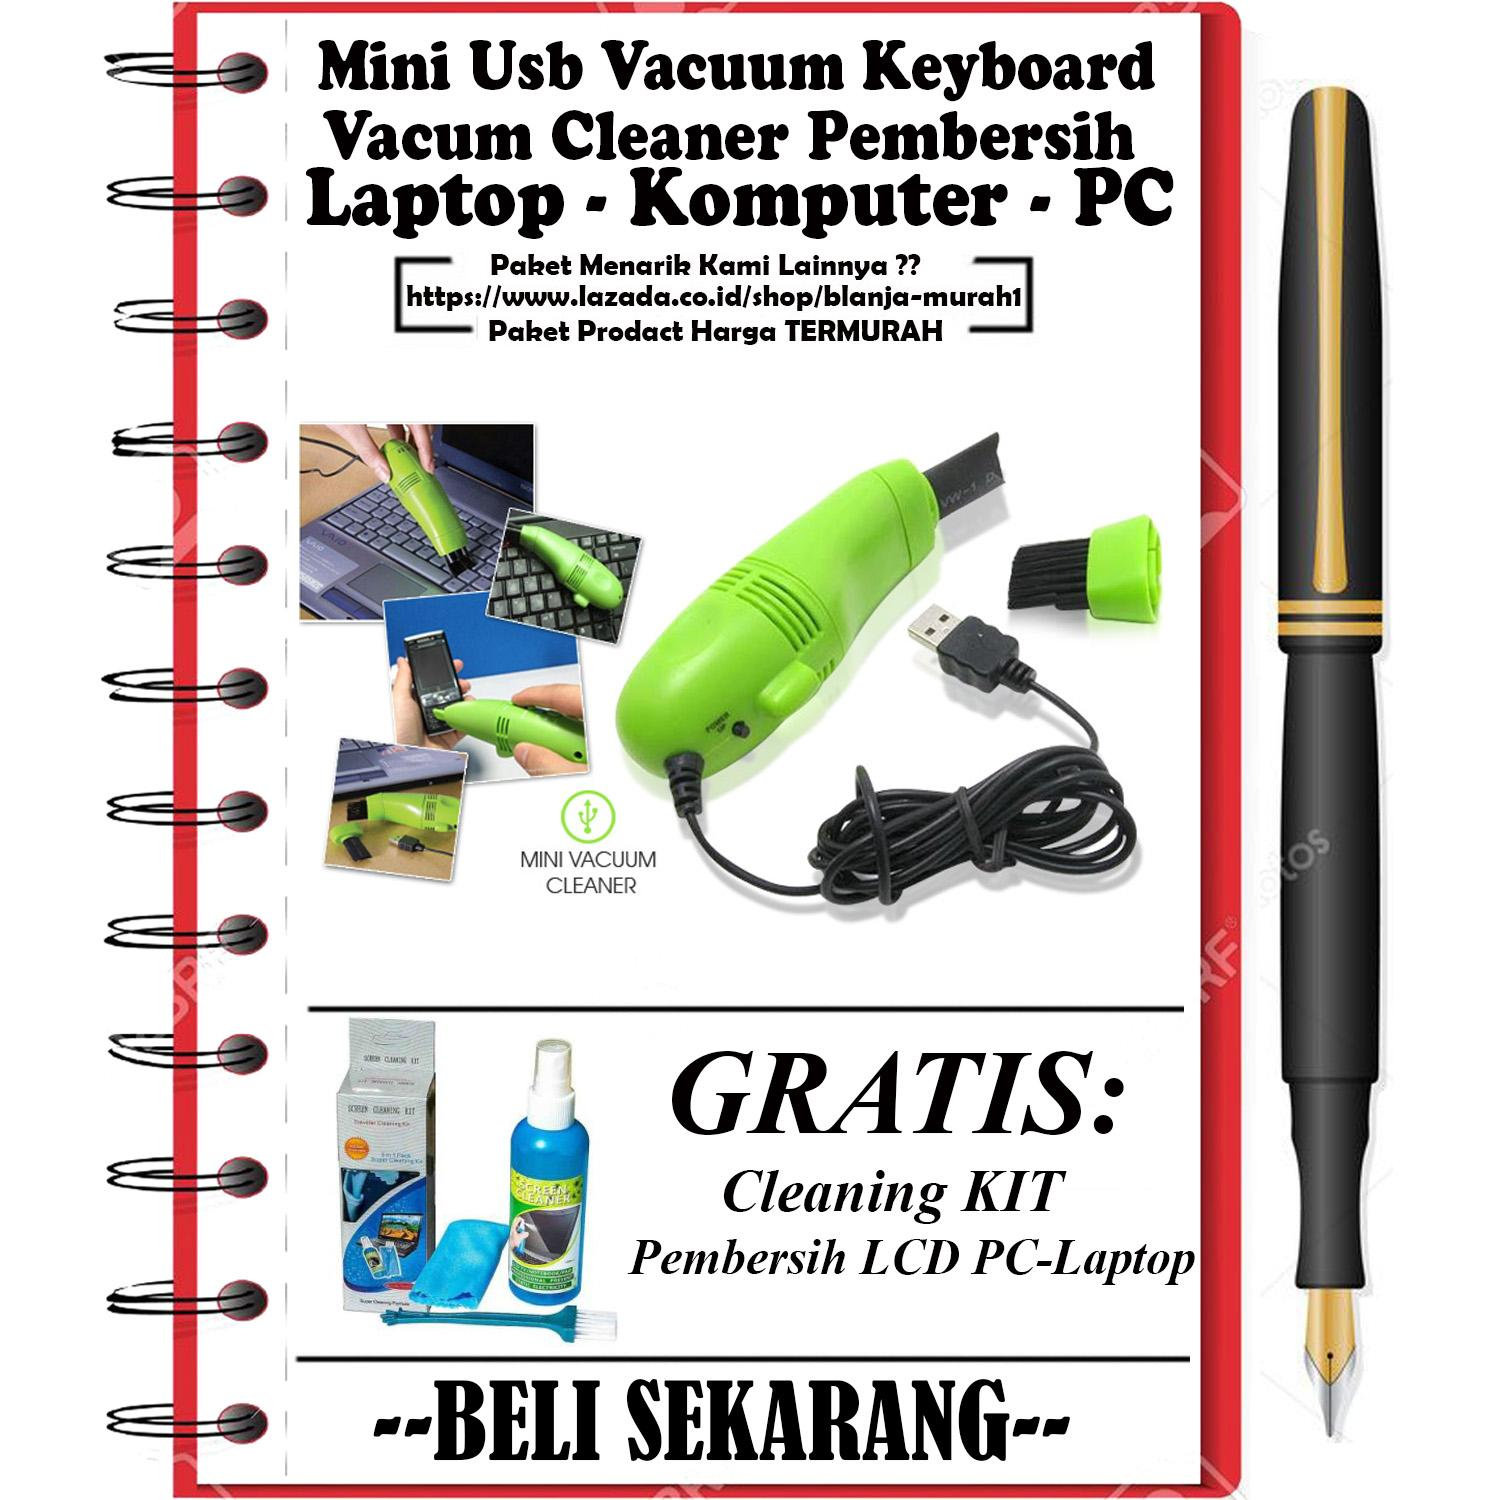 Pembersih Mini USB Vacuum Keyboard Cleaner For Laptop Komputer PC Vacum Penghisap - GRATIS Cleaning Kit Pembersih LCD Pc / Laptop / Handphone